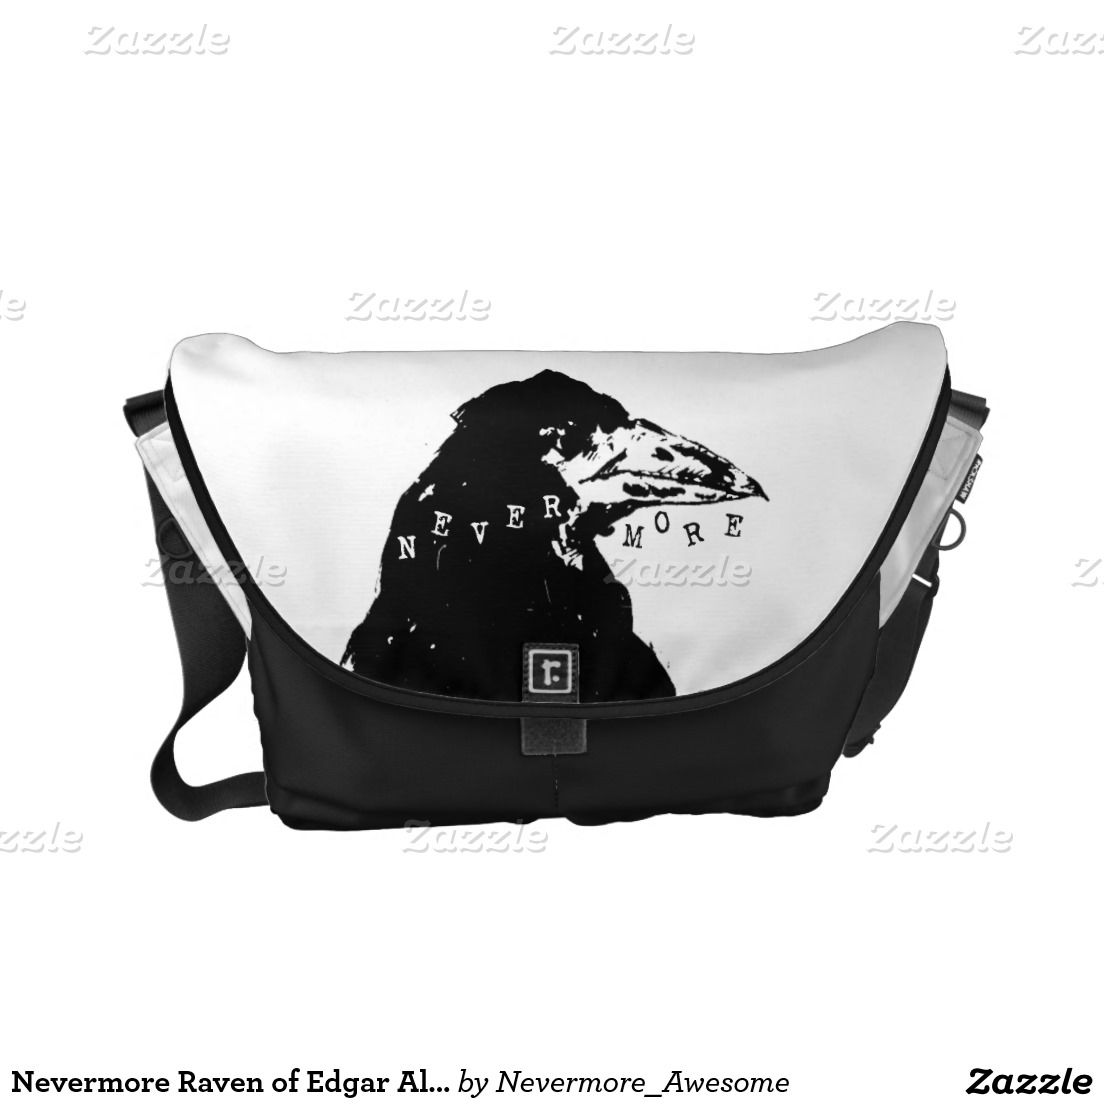 Nevermore Raven of Edgar Allan Poe Messenger Bag